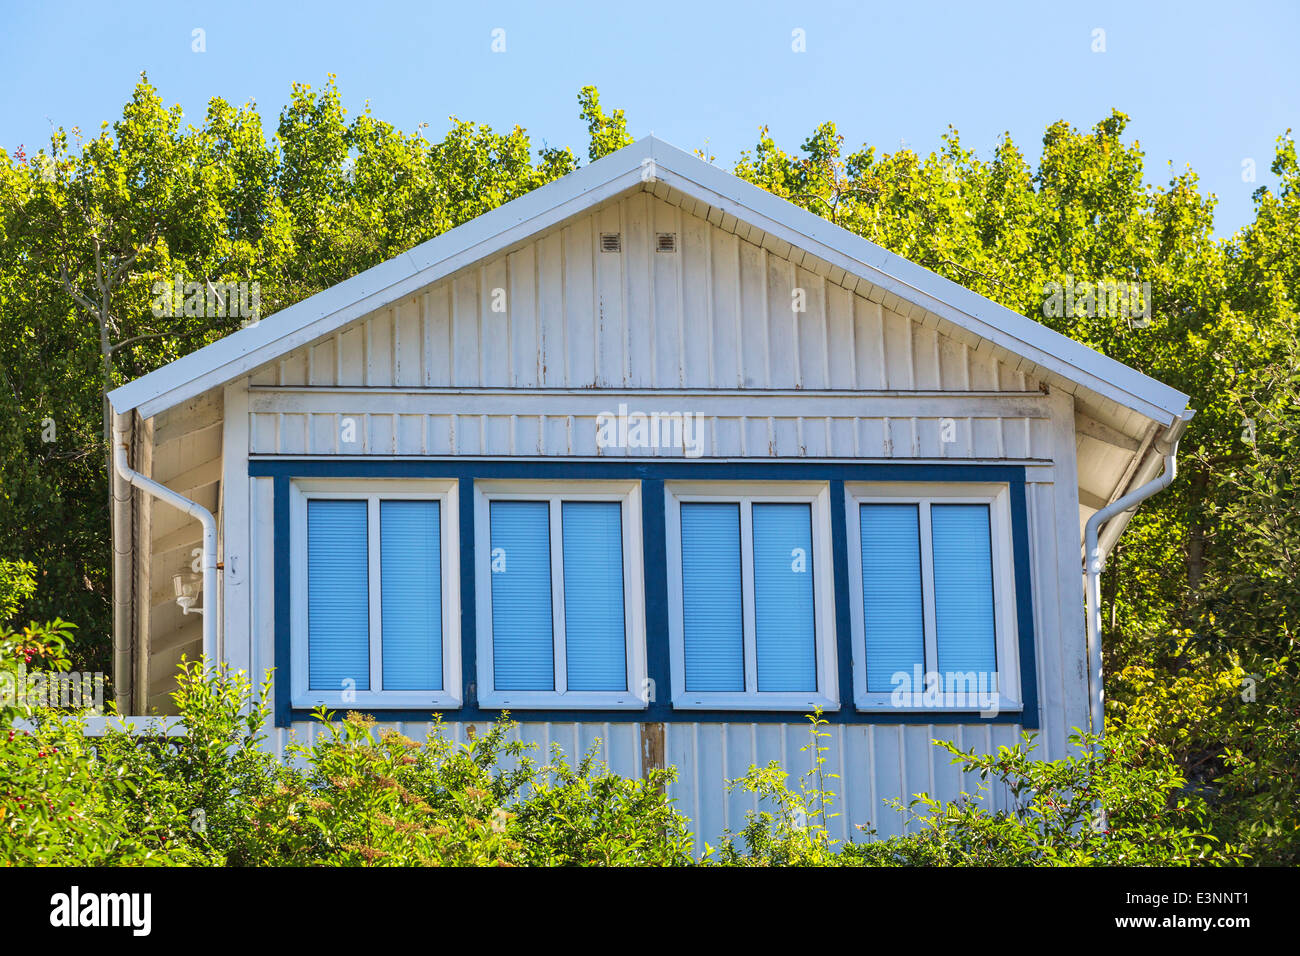 House gable with window - Stock Image